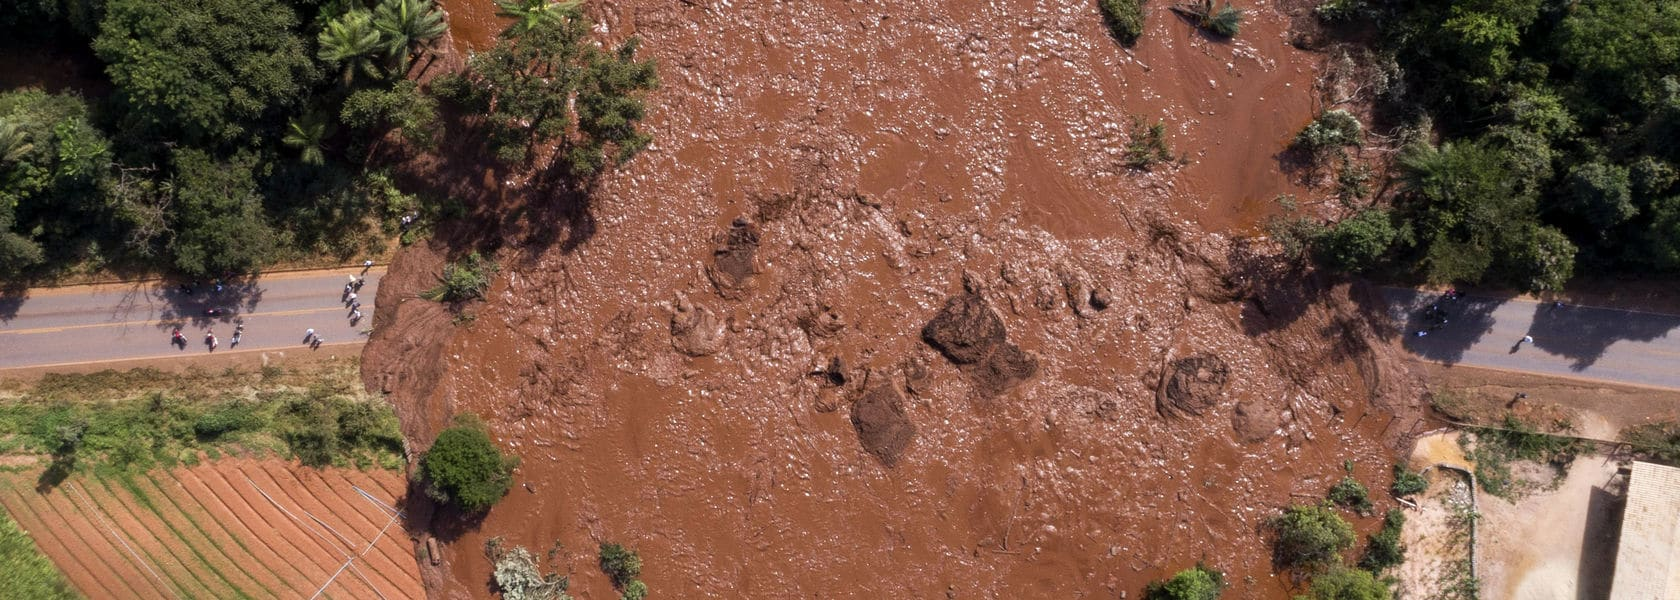 New mining standards aim to prevent future TSF catastrophes